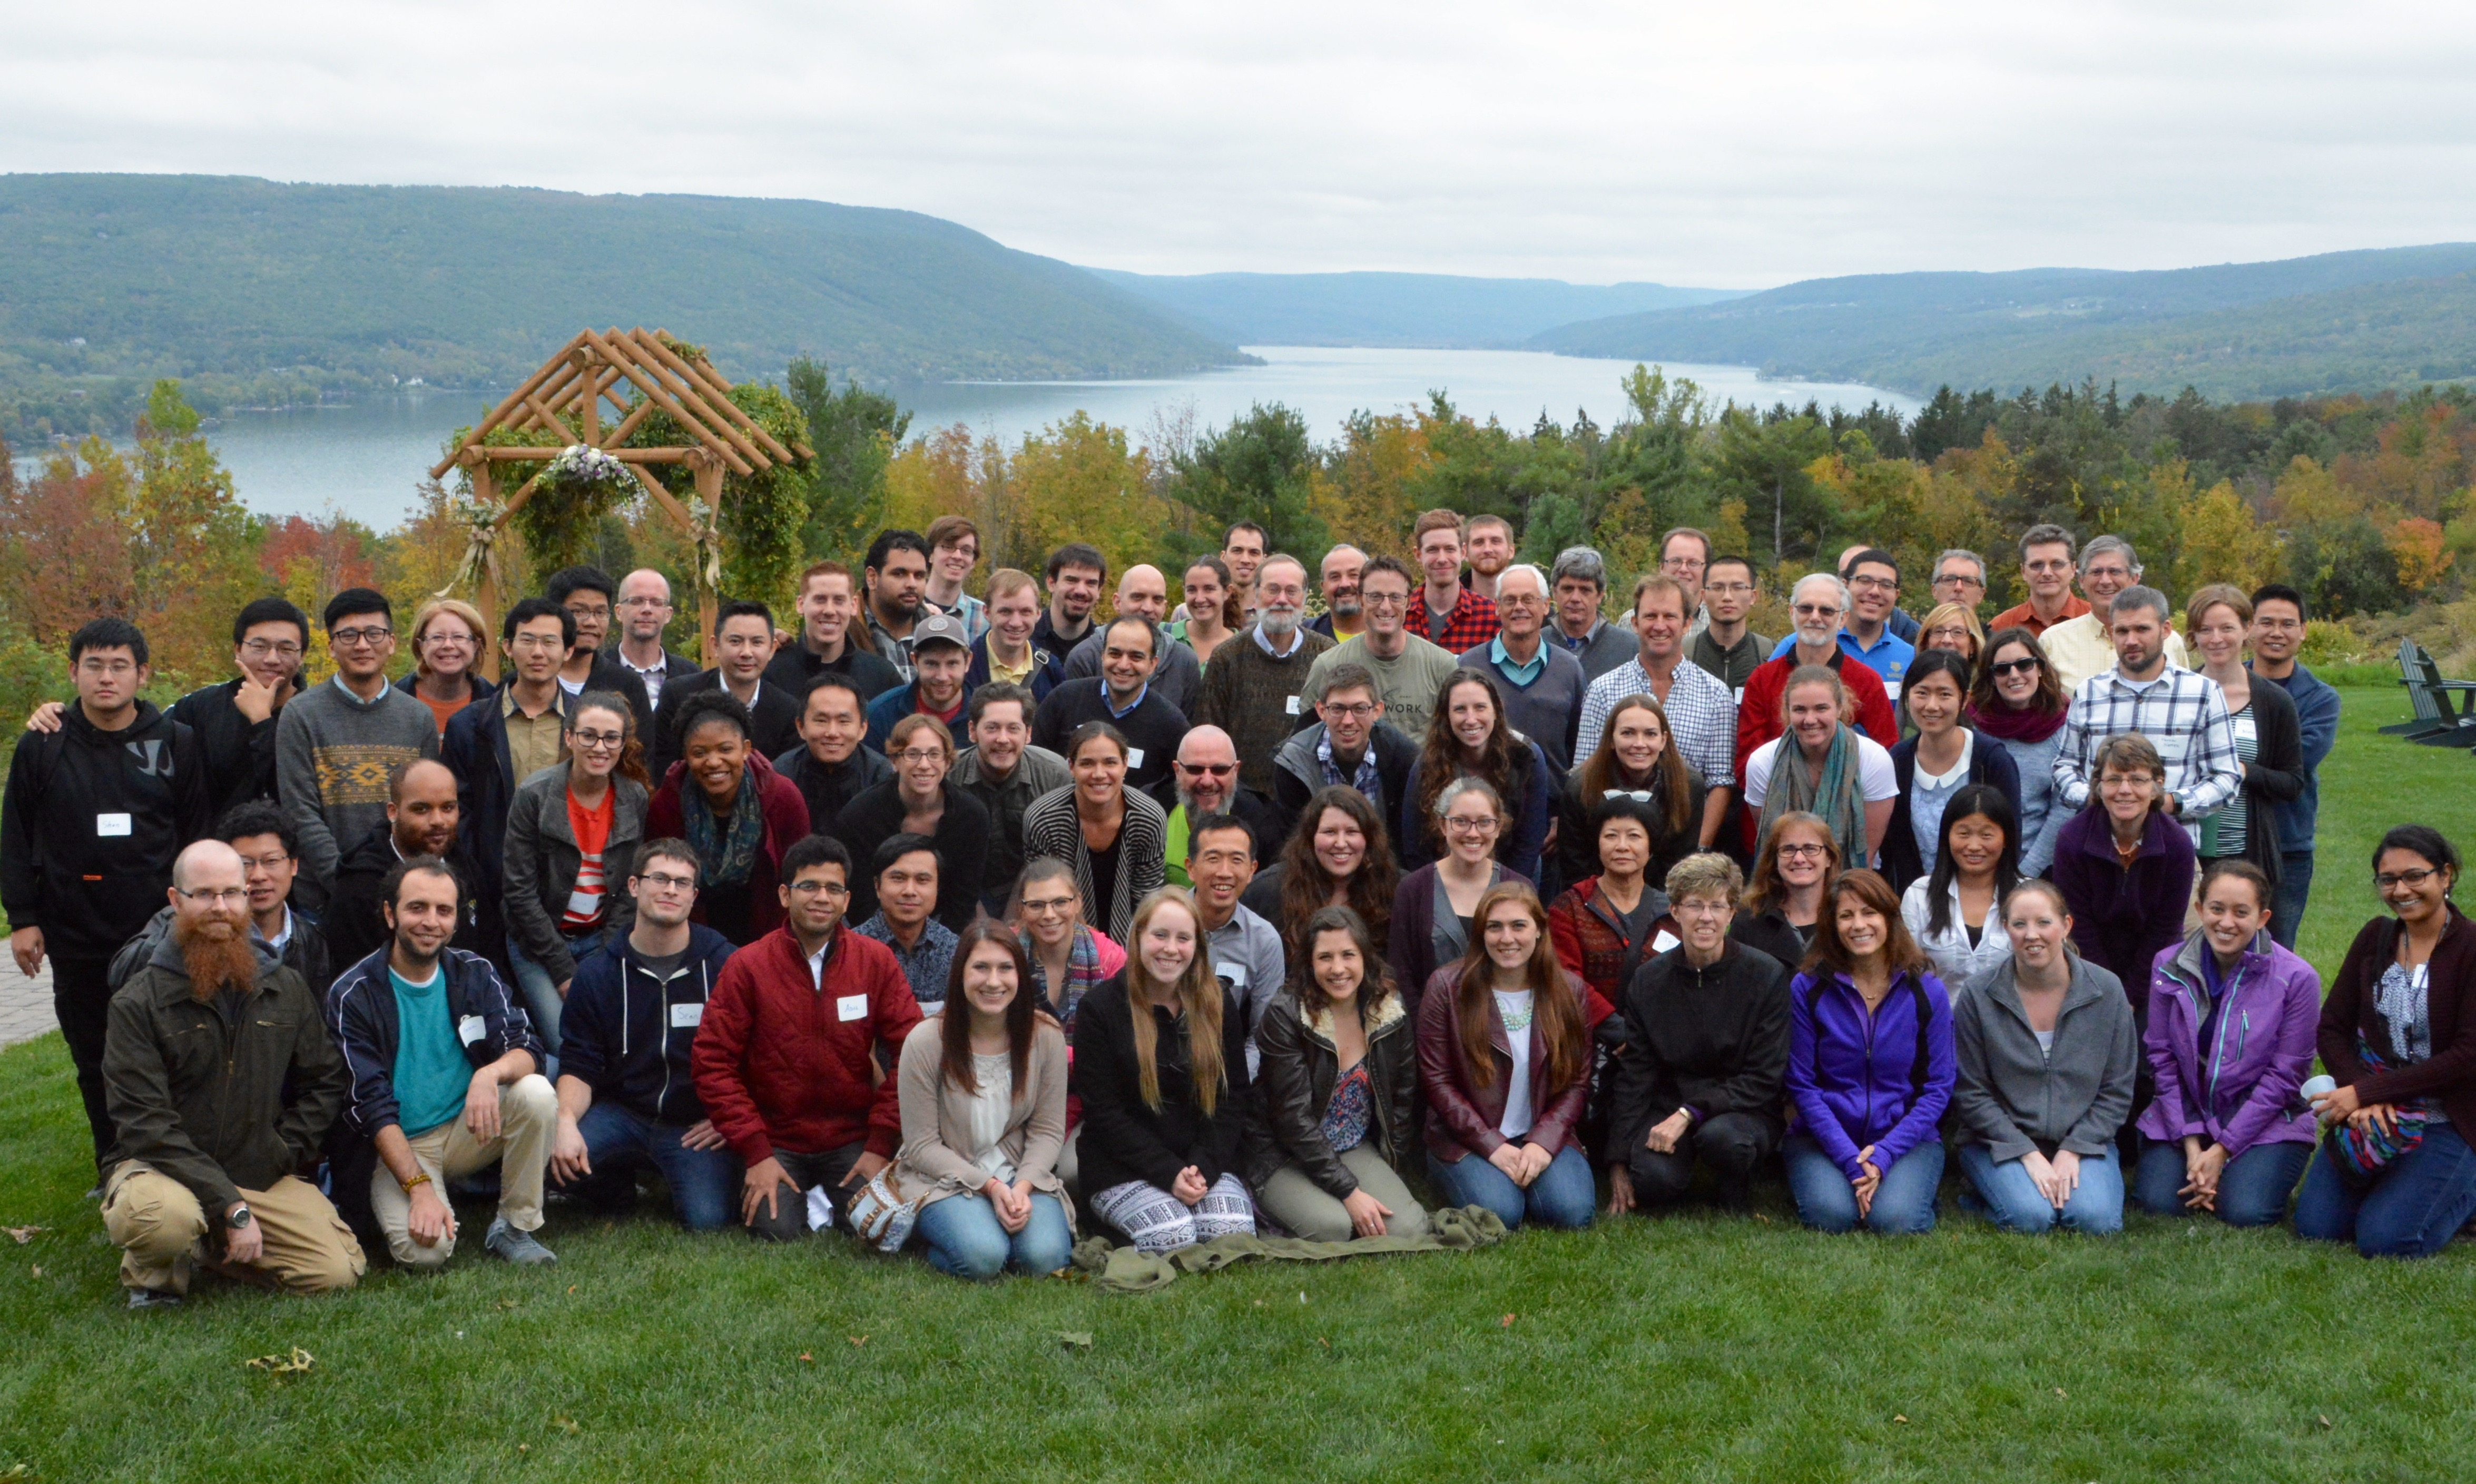 021 Research Paper Retreat Group Shot Interesting Topics Fearsome Biology Cell For Evolutionary High School Full